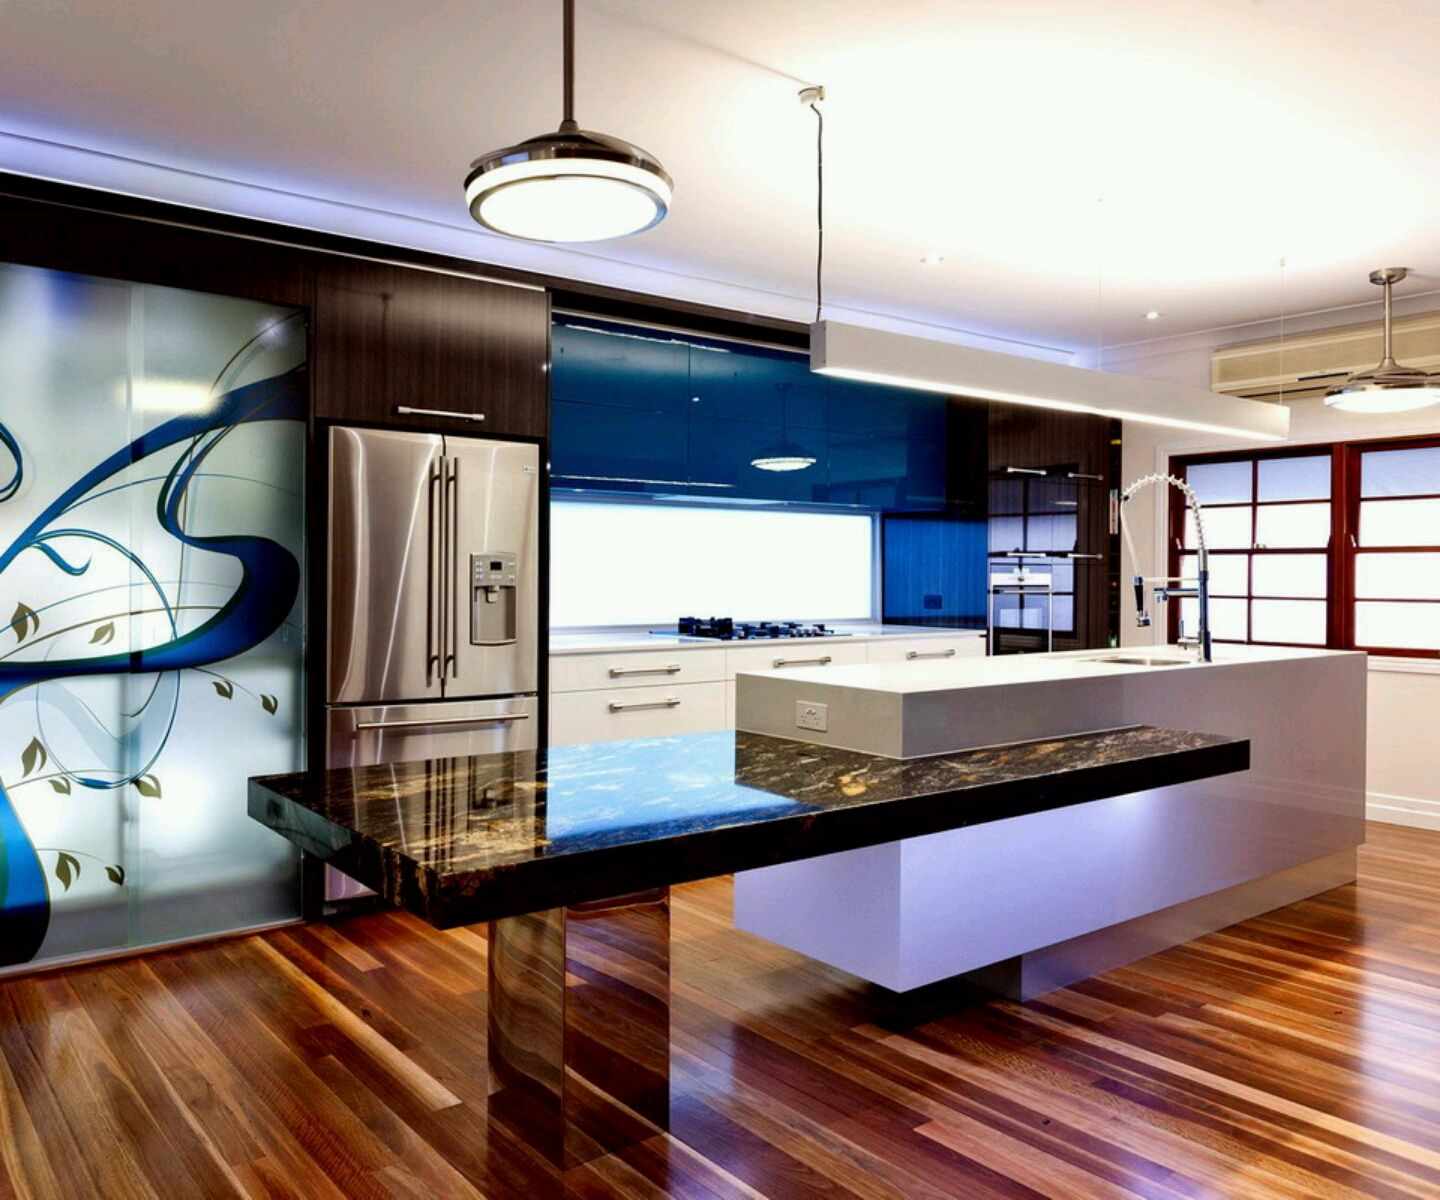 New Home Design Ideas: Ultra modern kitchen designs ideas ...